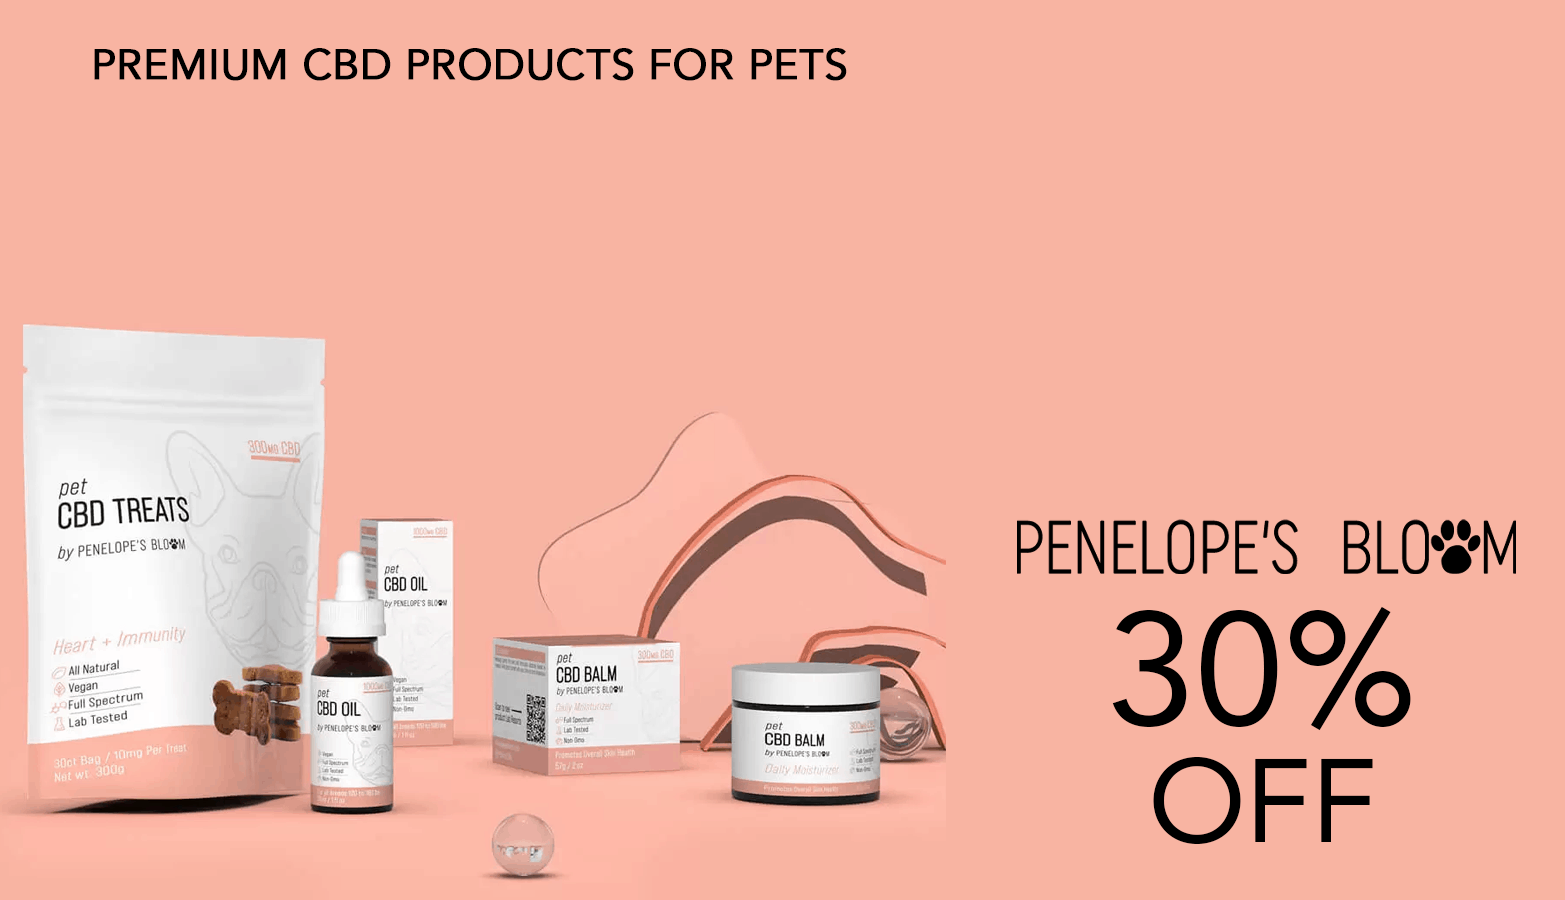 Penelope's Bloom CBD Coupon Code 30 Percent Offer Website